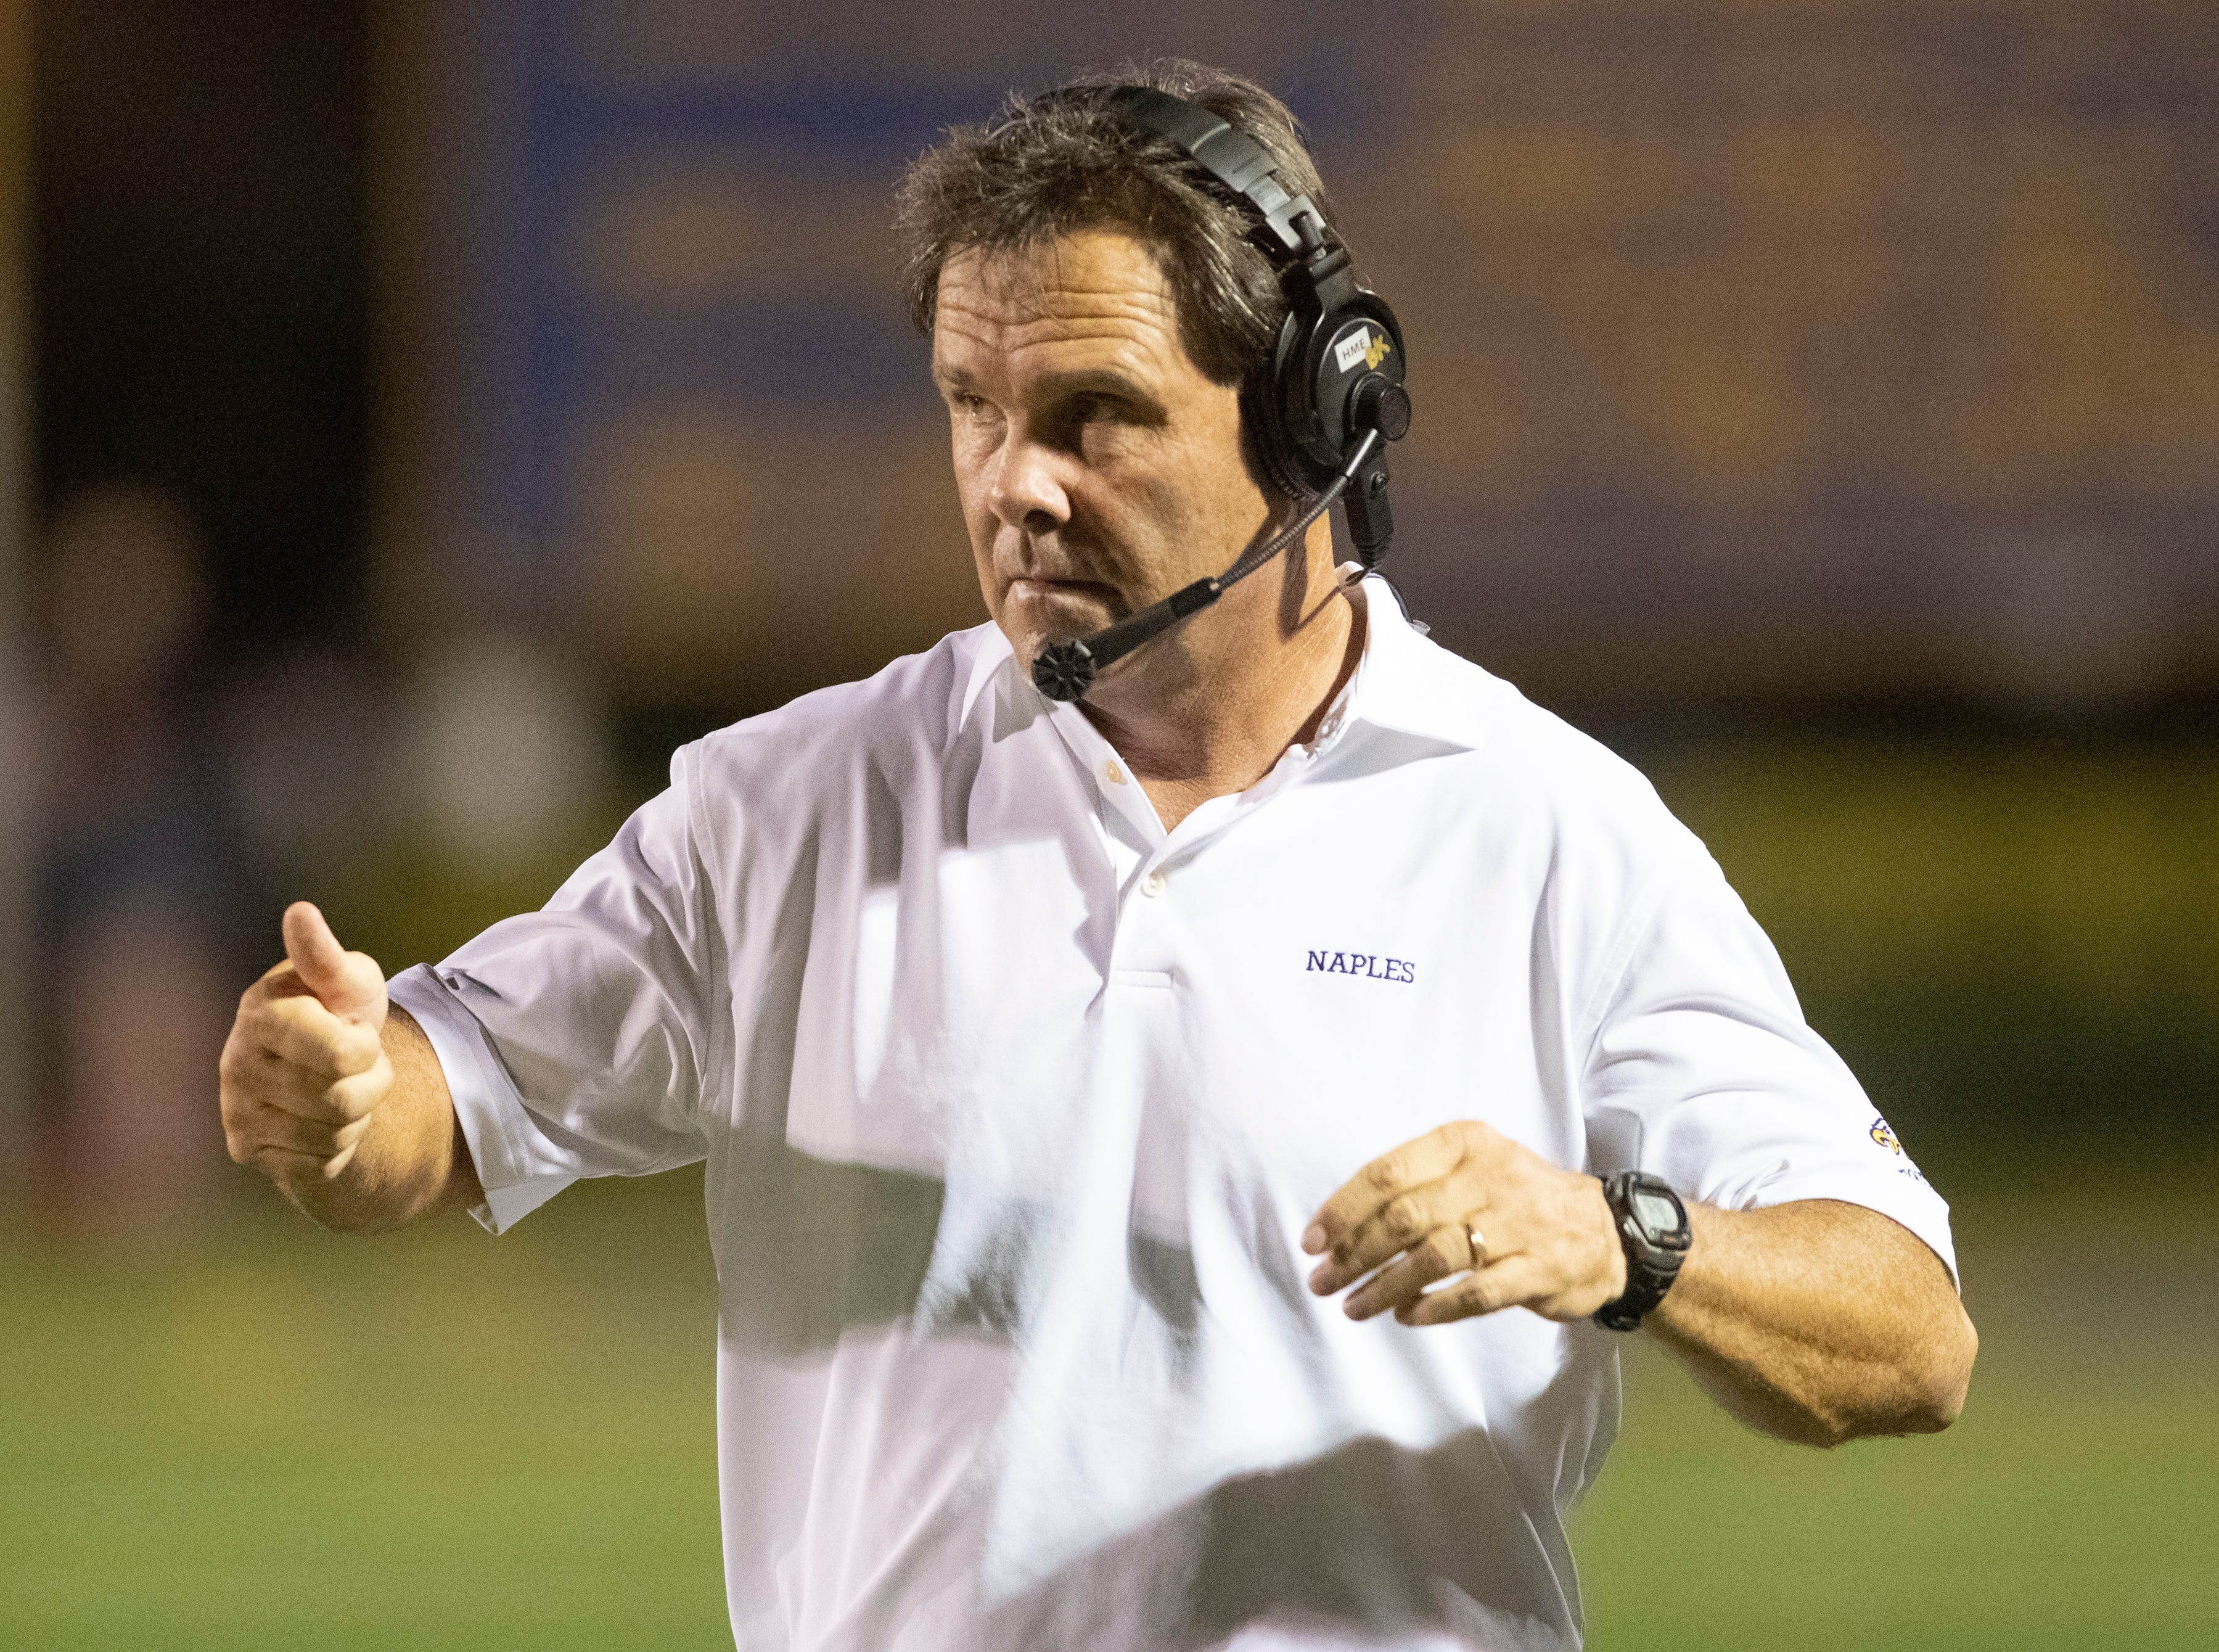 Naples head coach Bill Kramer gives his team a thumbs up during the Class 6A regional quarterfinal playoff game against Lehigh at Naples High on Friday night, November 9, 2018.